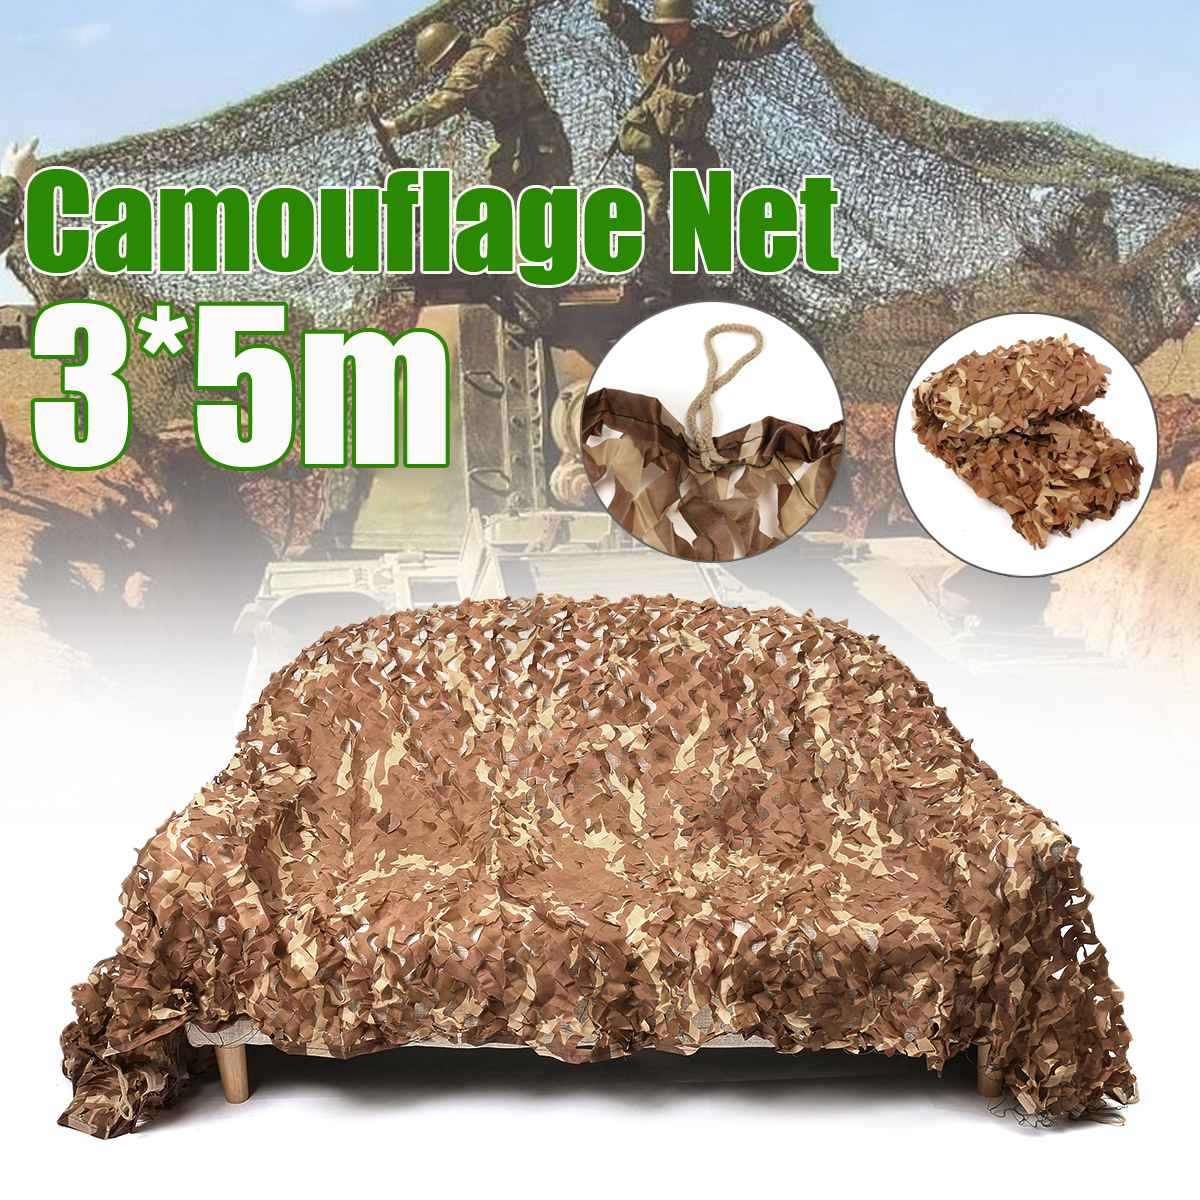 Outdoor Camping Camo Net Jungle Leaves Desert Woodland Camouflage Net Double Layer Shade Sail For Military Cloths Car Covering